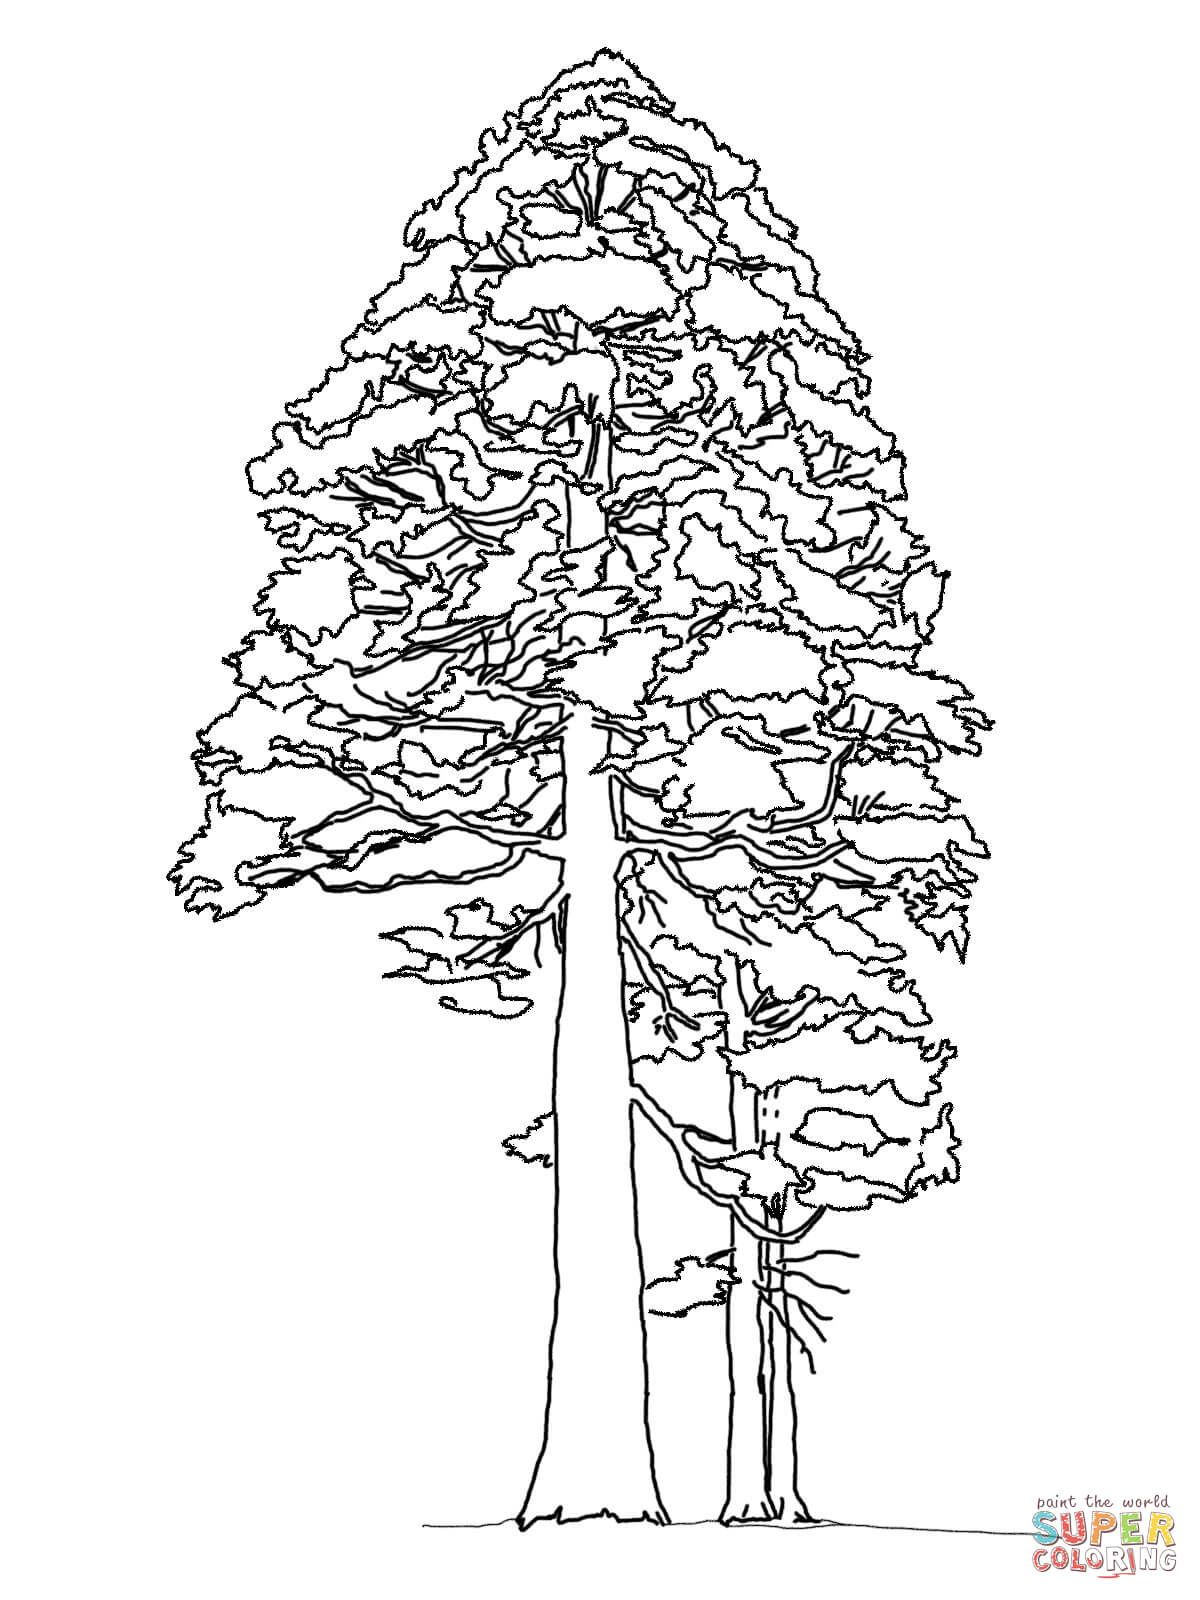 Giant Sequoia Or Redwood Coloring Page Free Printable Coloring